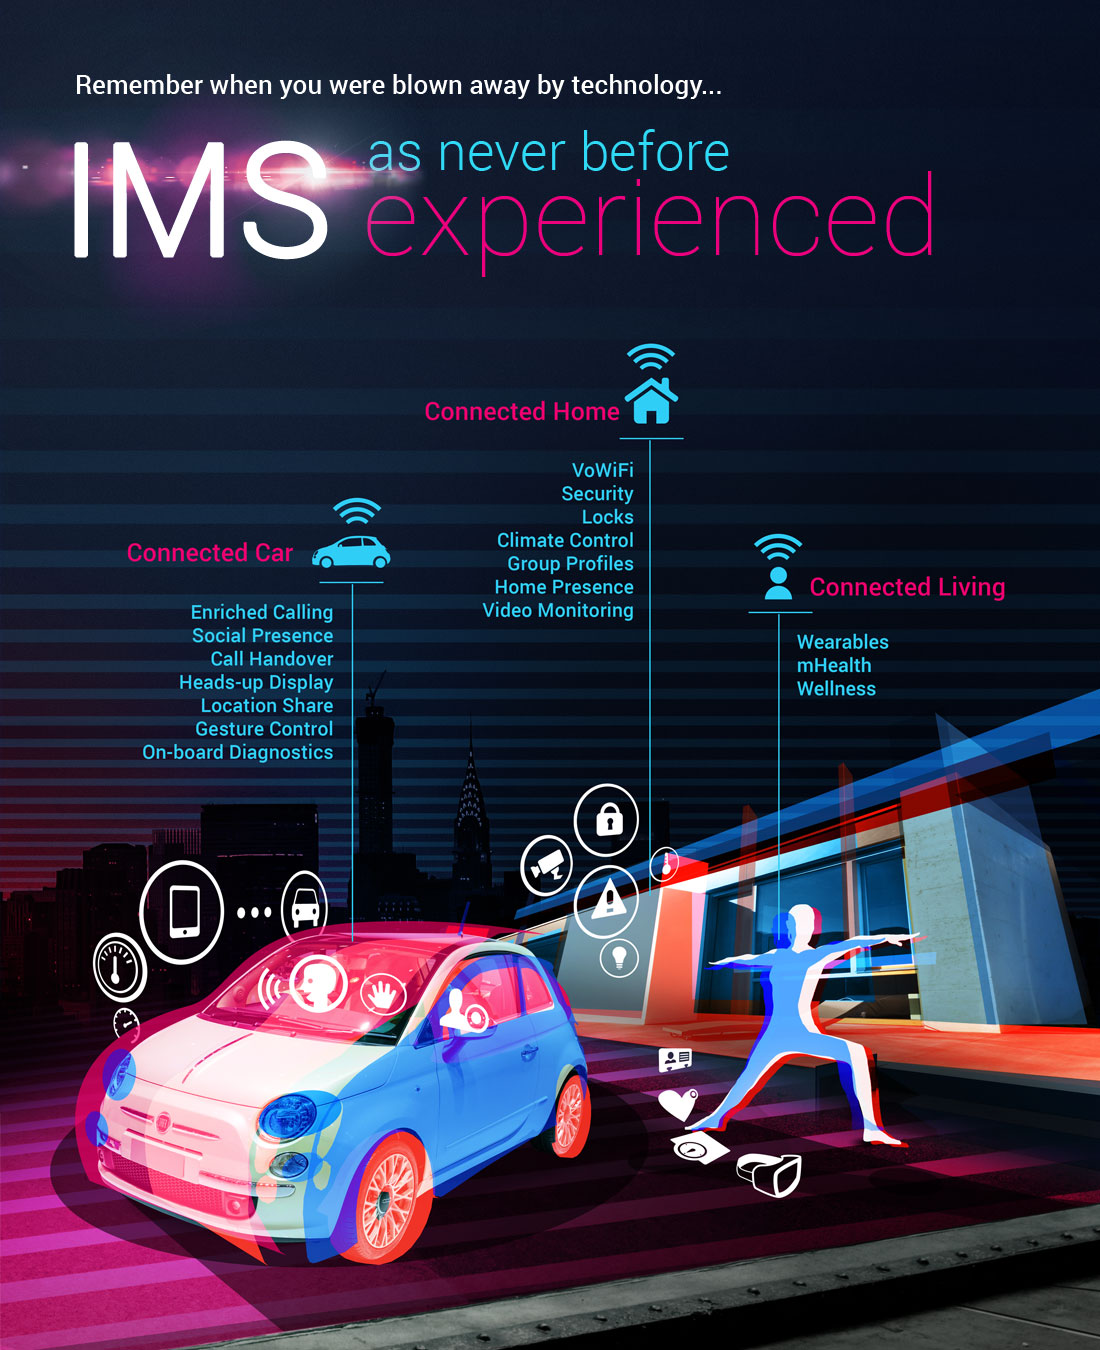 Remember when you were blown away by technology... IMS as never before experienced. Connected Car. Connected Home. Connected Living.